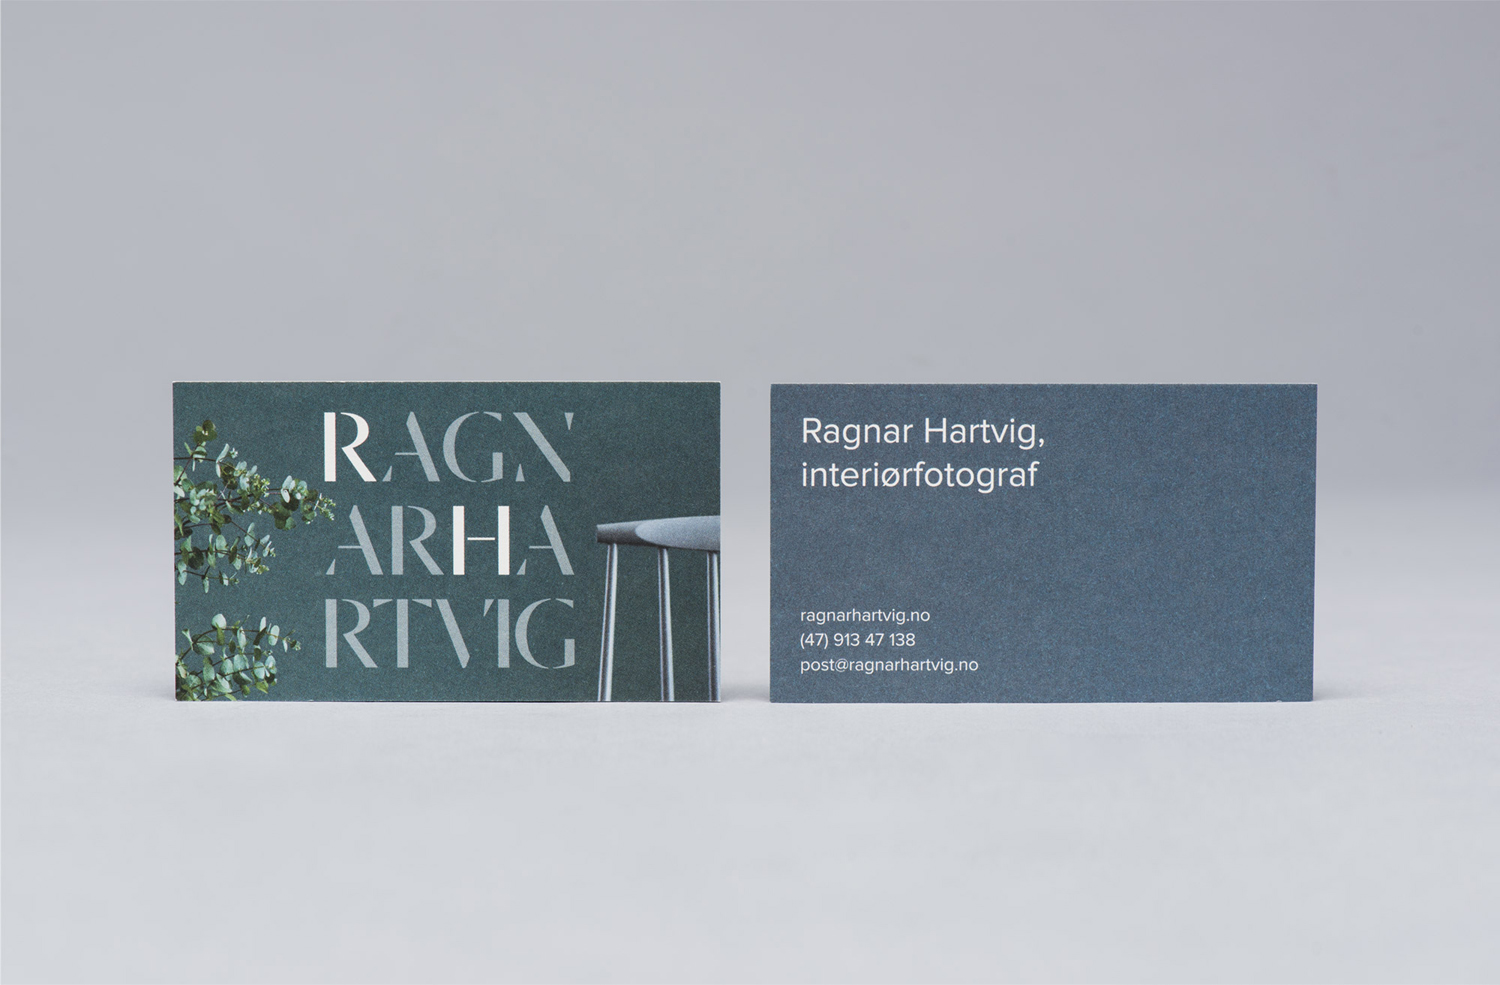 Business cards for Norwegian photographer Ragnar Hartvig by Commando Group. These feature the font Dala Moa and still life images.